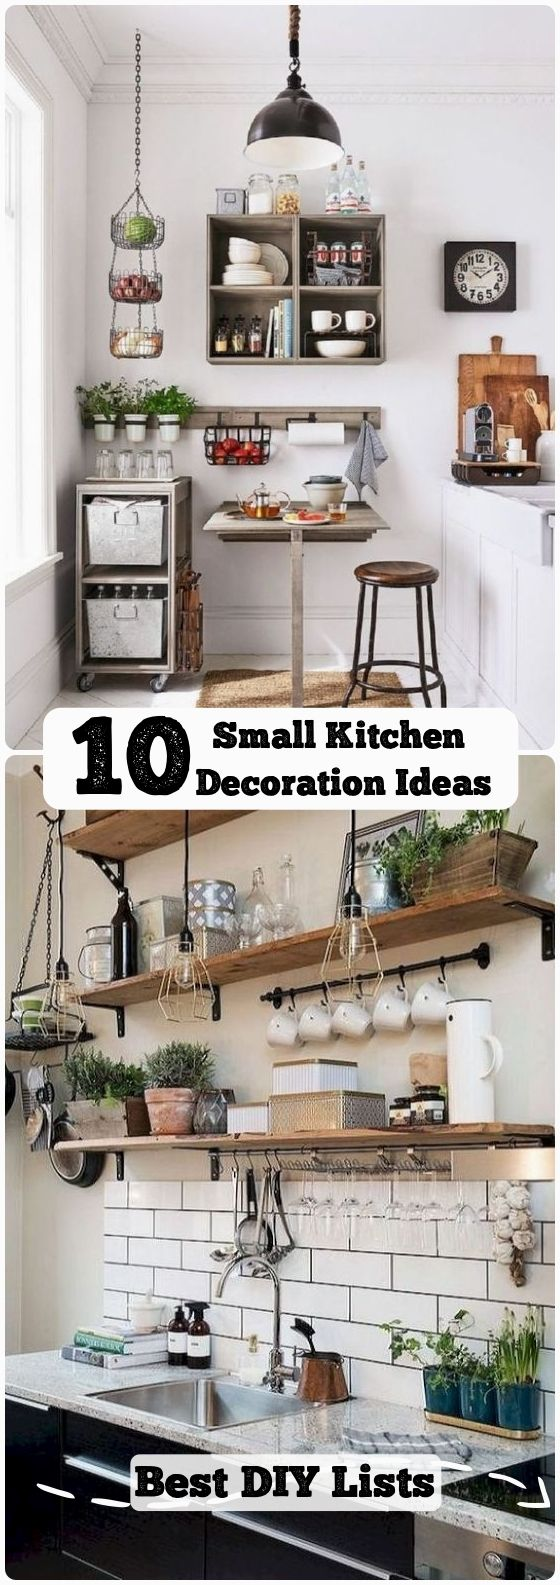 10 clever ideas for small kitchen decoration in 2020 home remodeling home decor kitchen on kitchen ideas quirky id=99662